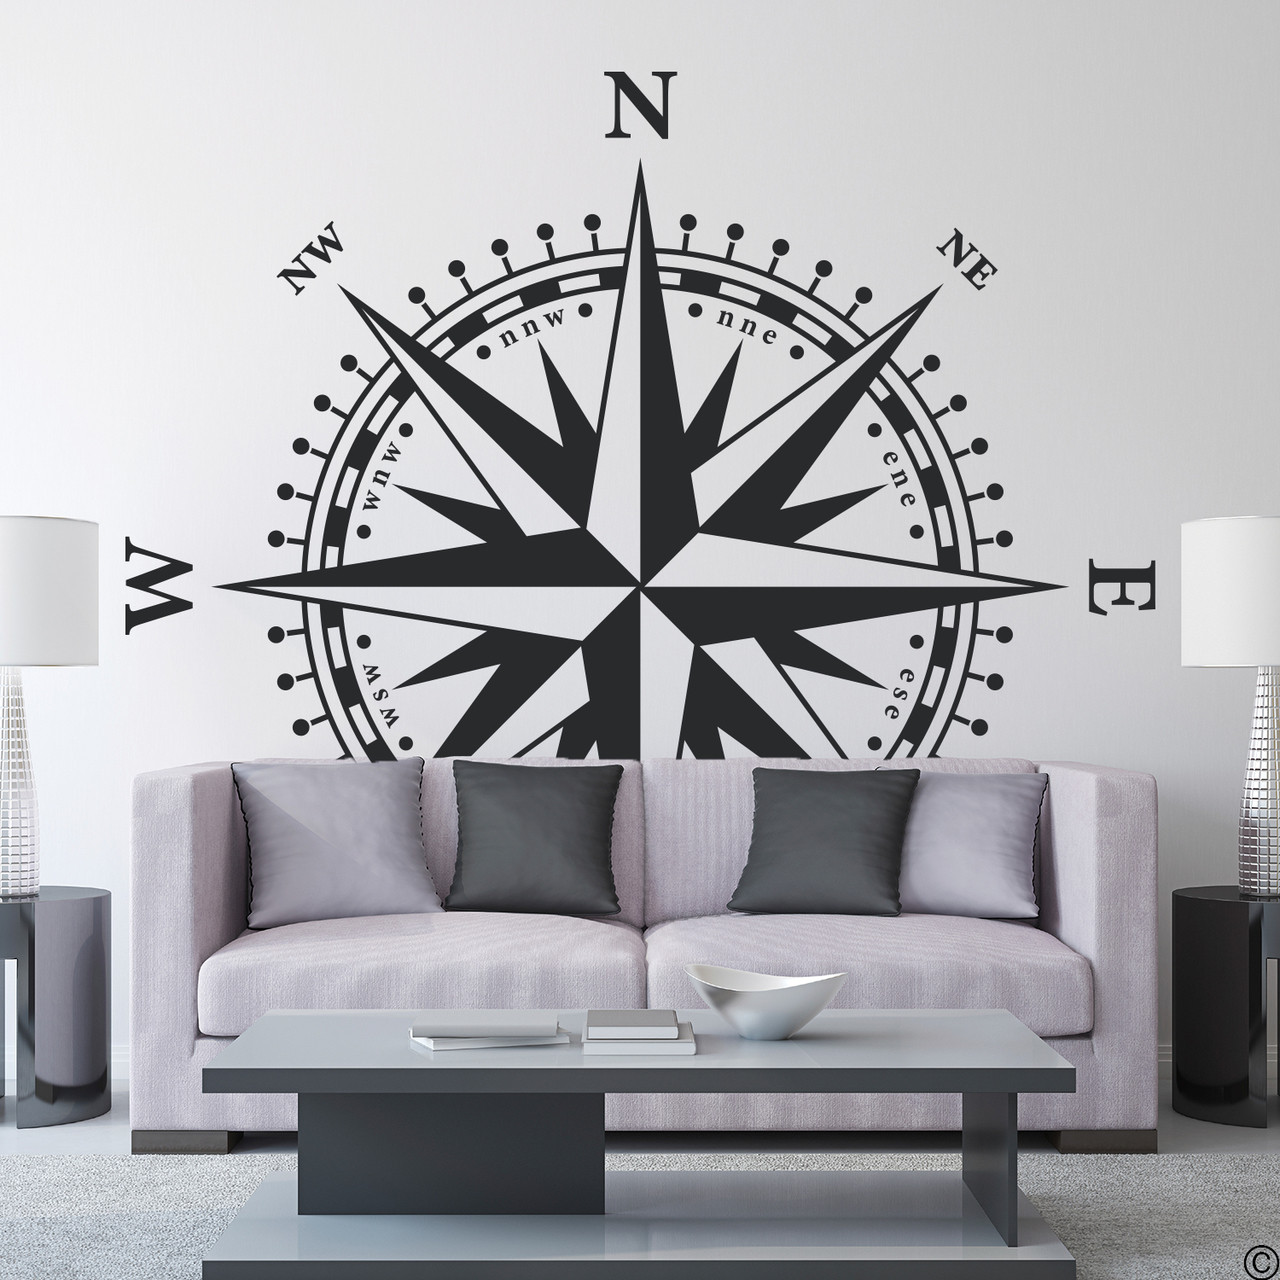 The Christopher Compass wall decal in black vinyl and placed over a couch in a living room.